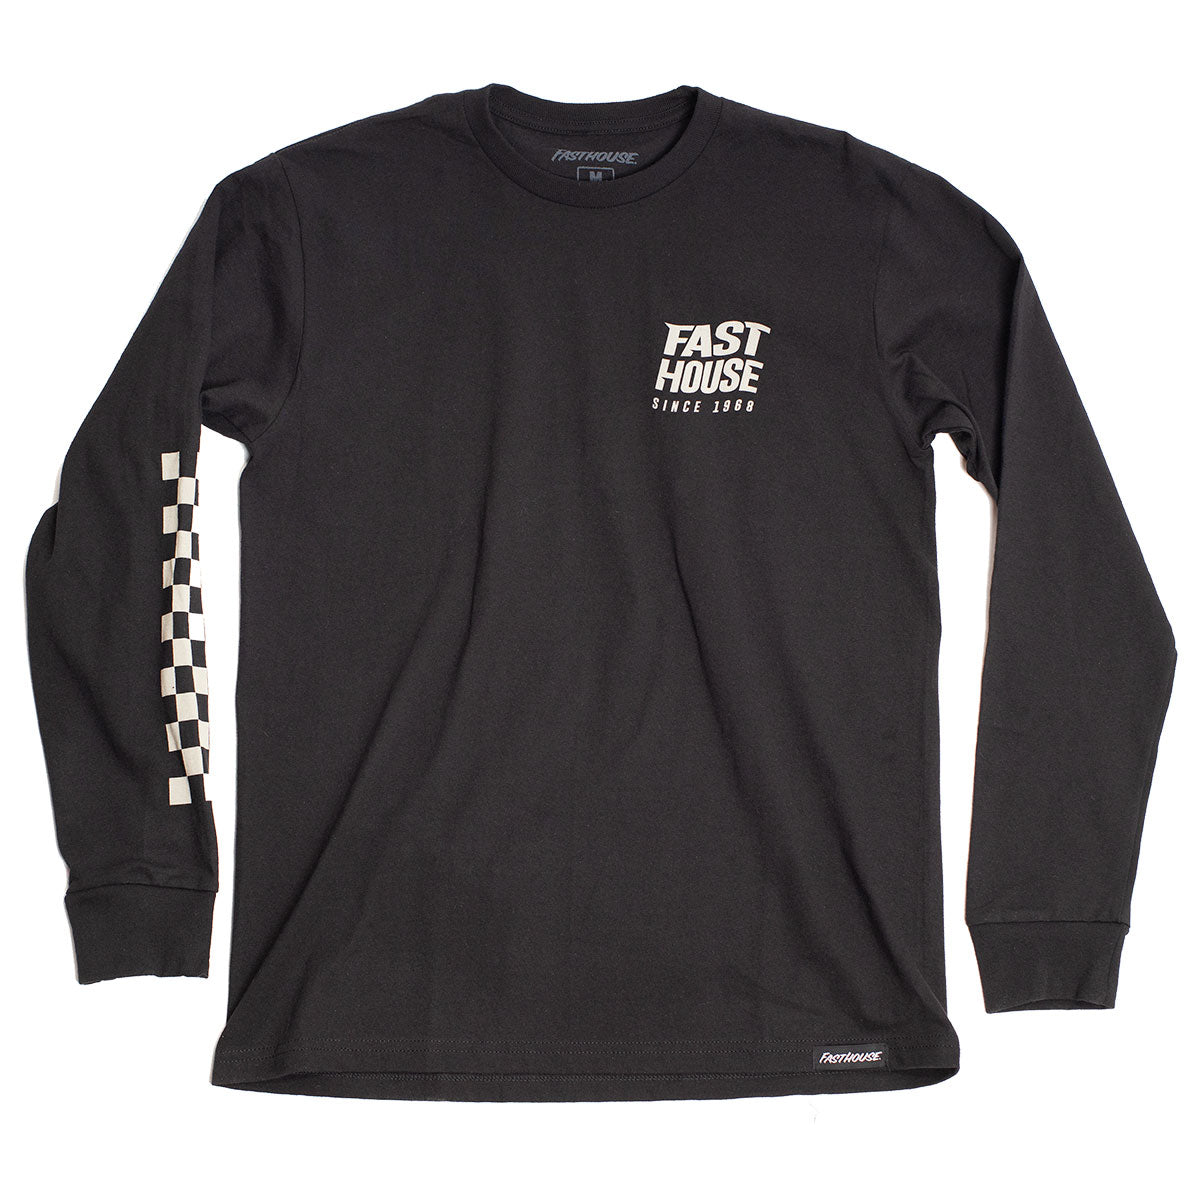 Surge Long Sleeve Tee - Black